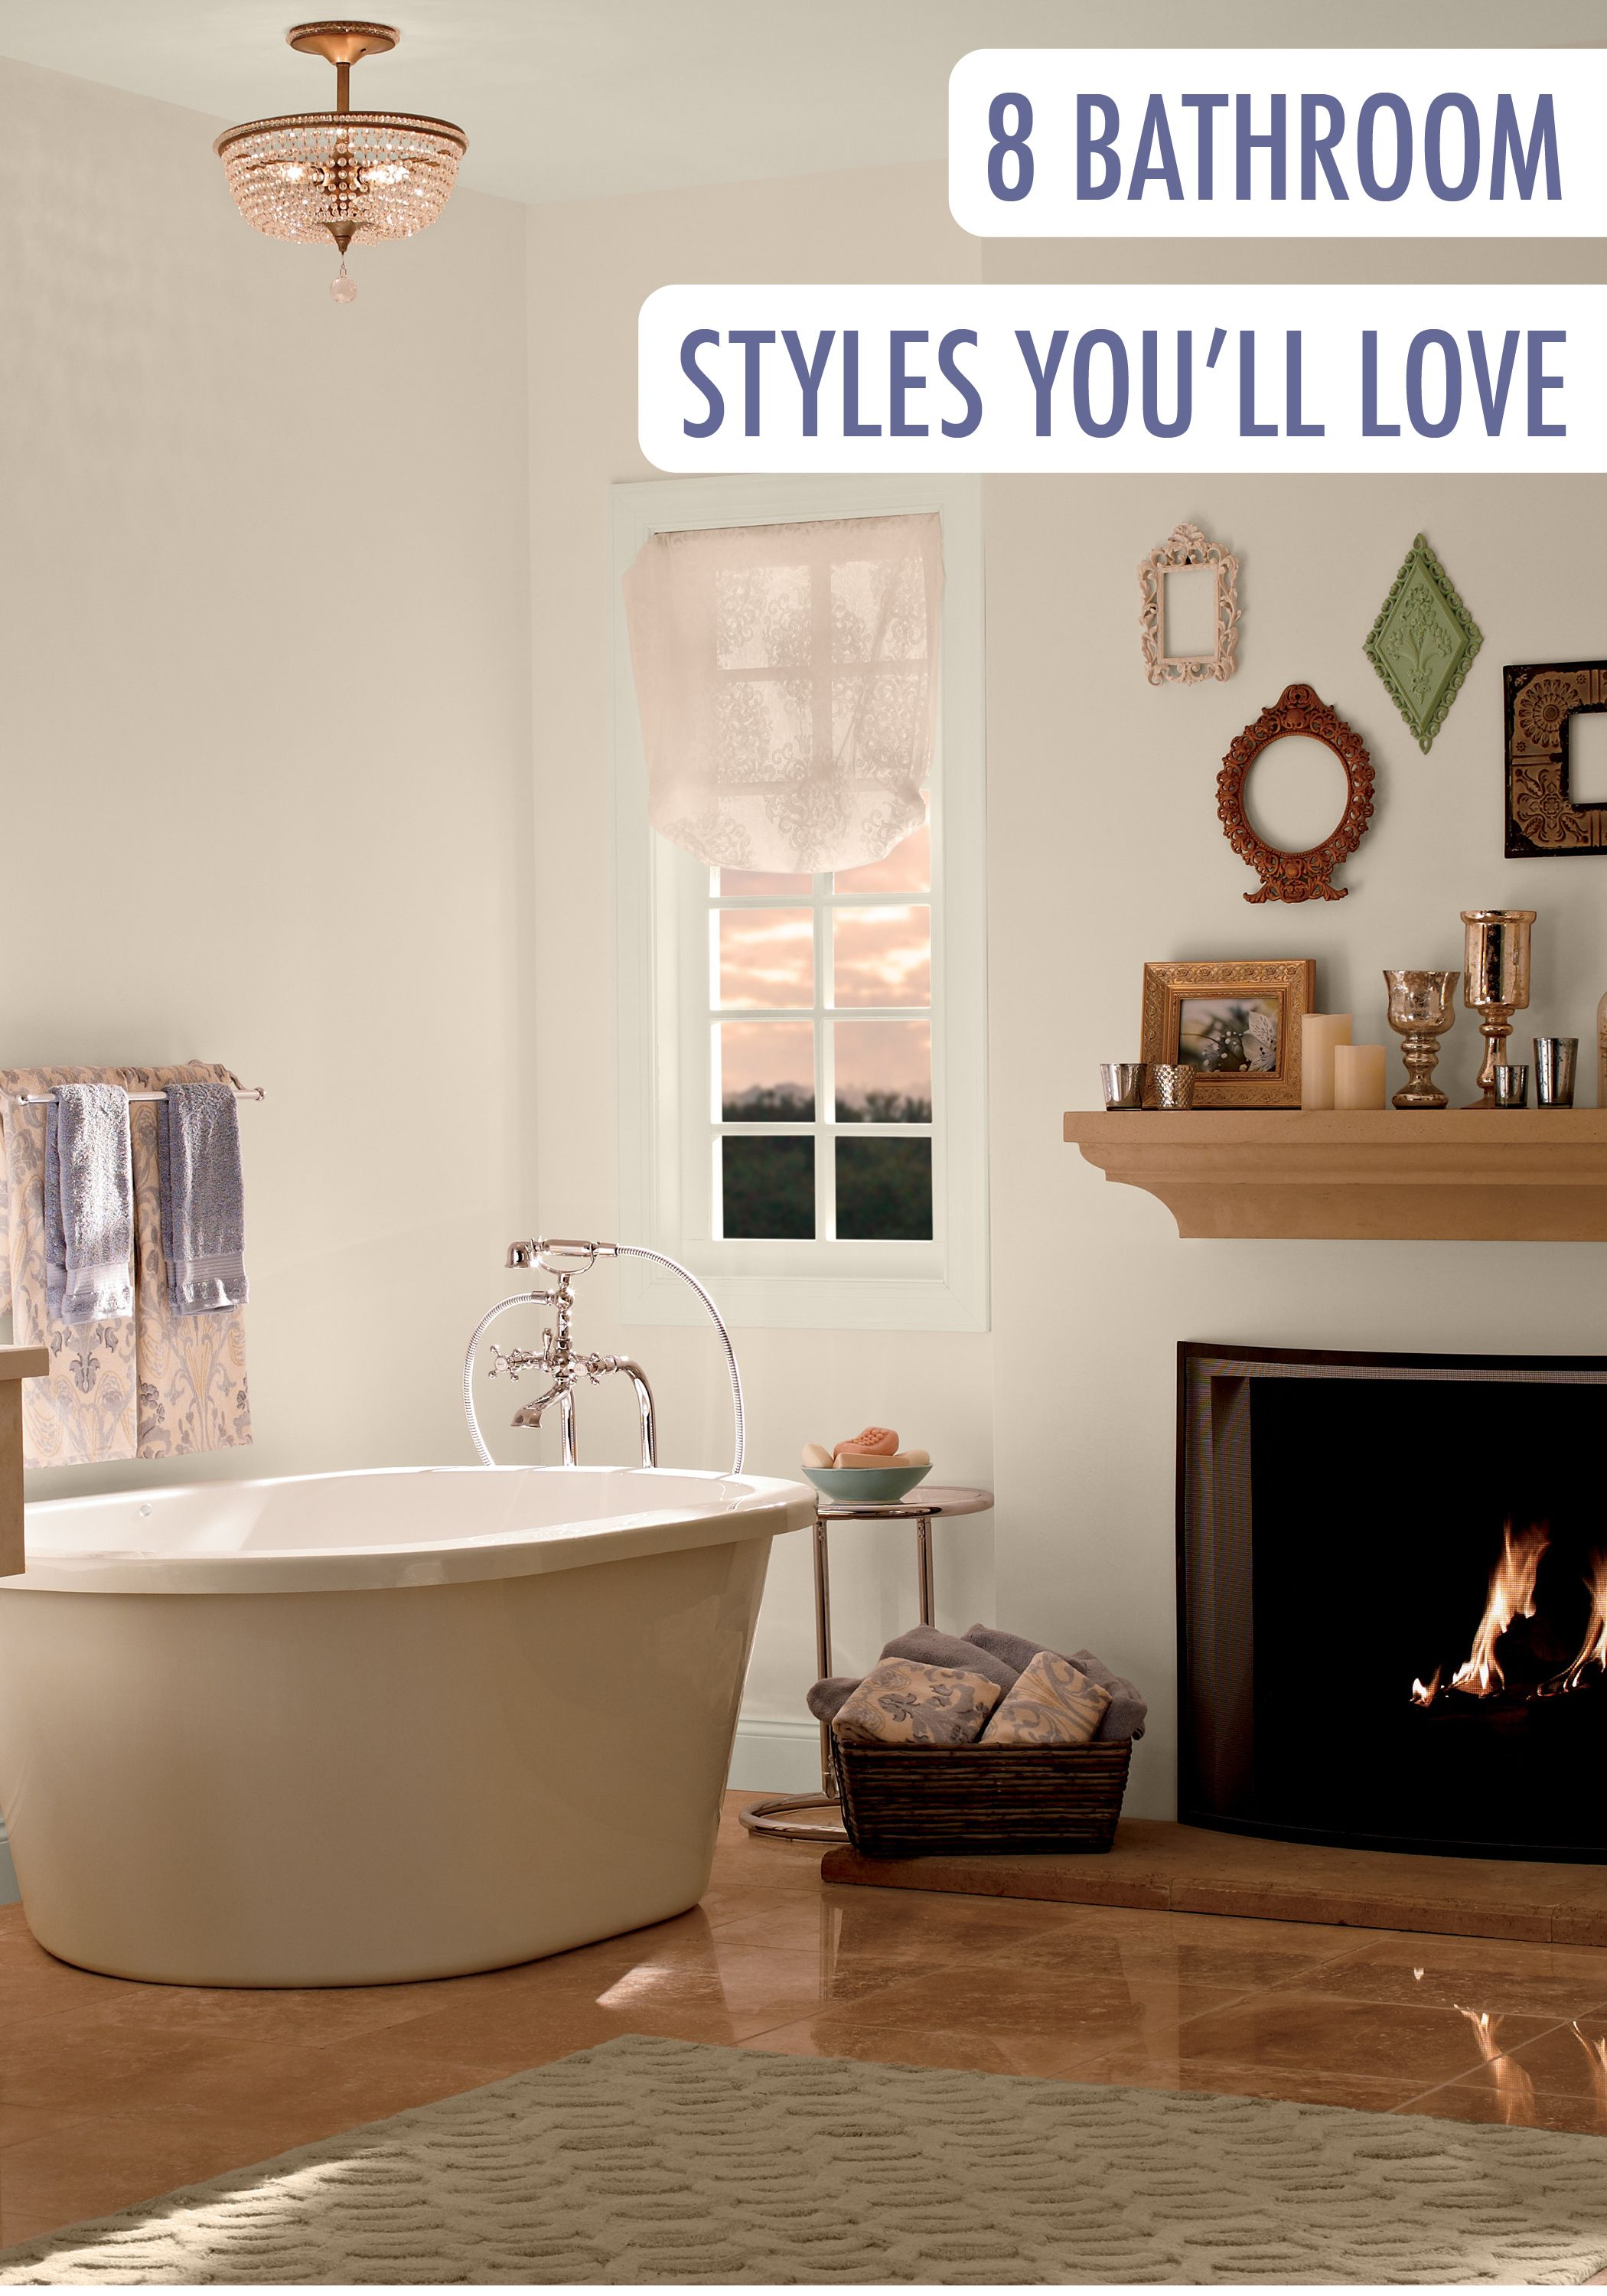 Find color inspiration when planning bathroom remodeling with BEHR s interior inspiration gallery